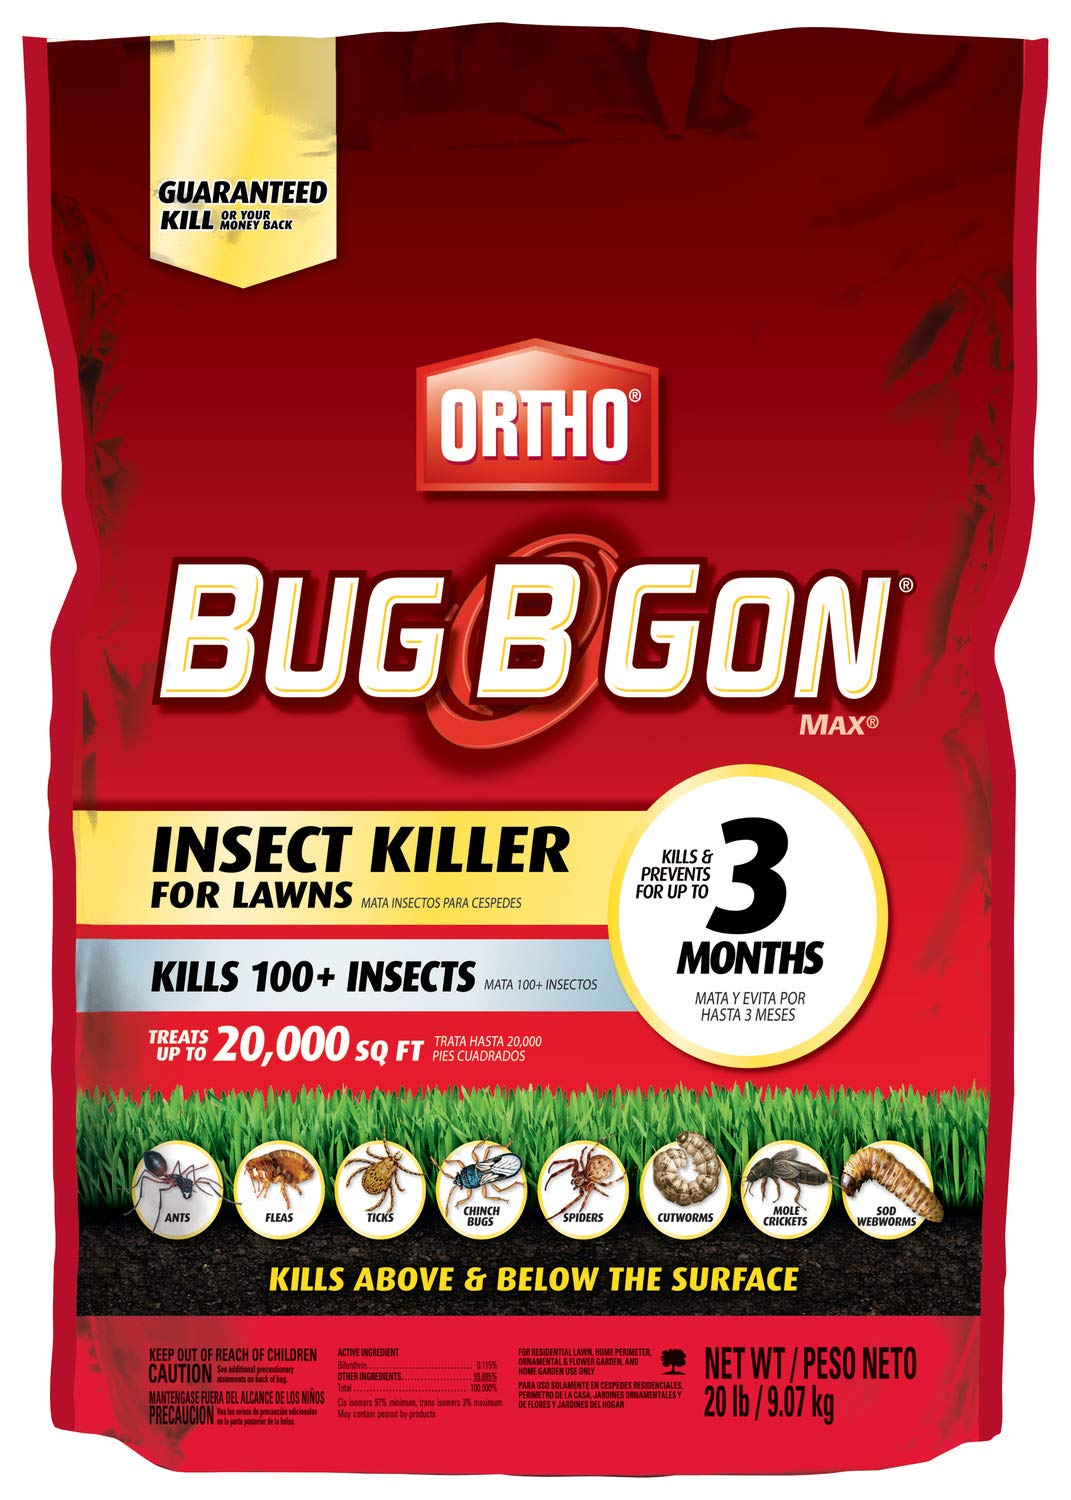 Ortho Bug B Gon Insect Killer for Lawns3, 20 lb. - Kills Ants, Fleas, Ticks, Chinch Bugs, Mole Crickets and Cutworms - Use on Lawns, Ornamentals and Home Perimeter - Treats up to 20,000 sq. ft. by Ortho